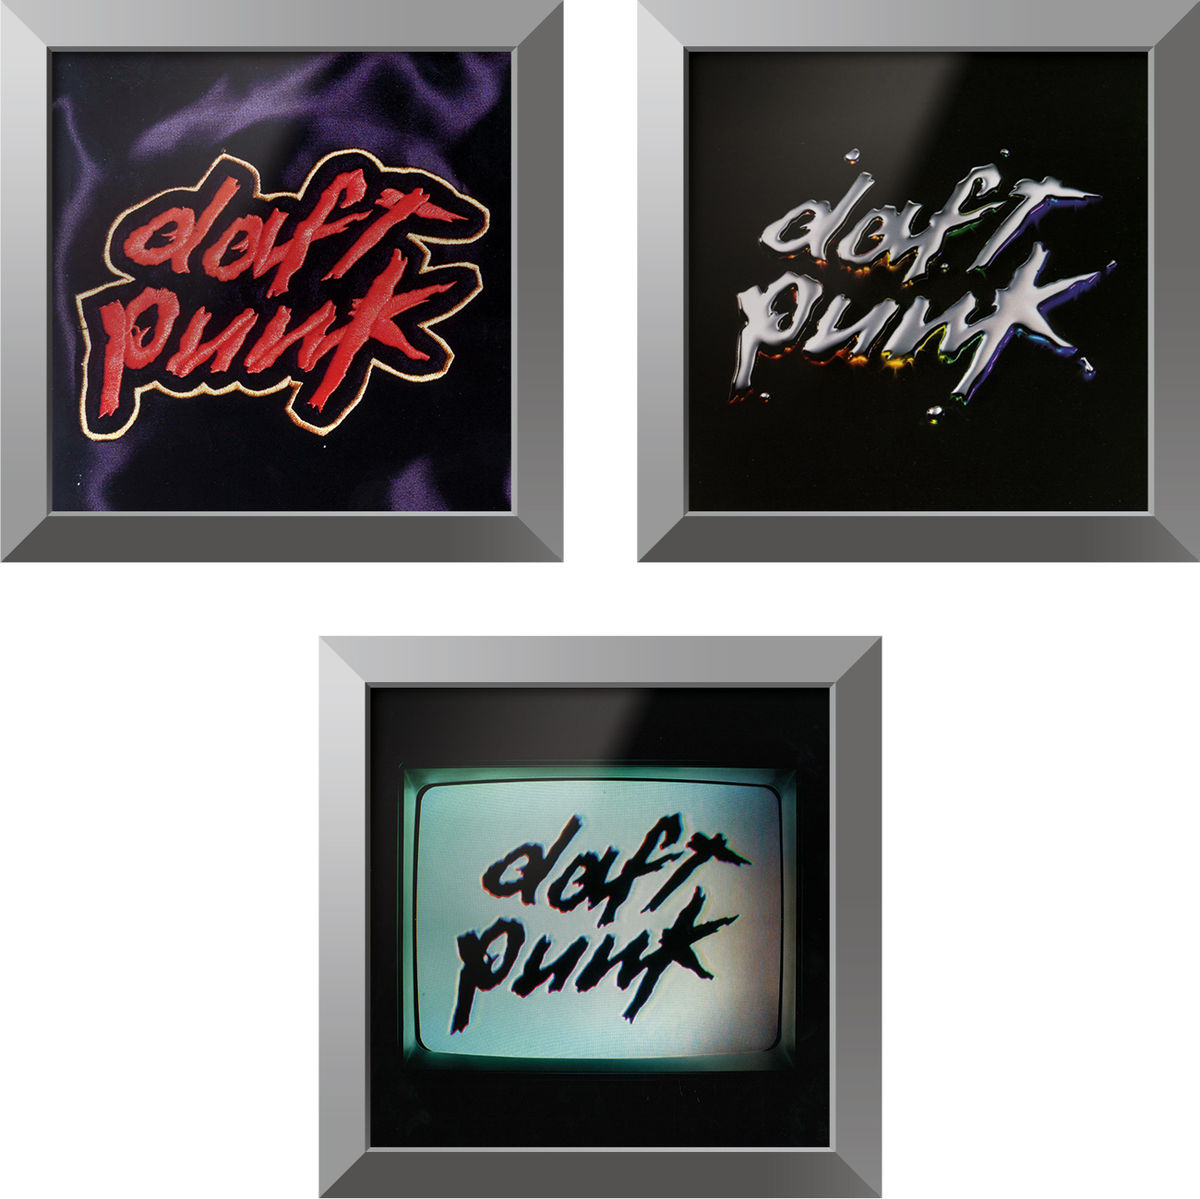 trilogie daft punk cadre rockonwall cadres son. Black Bedroom Furniture Sets. Home Design Ideas